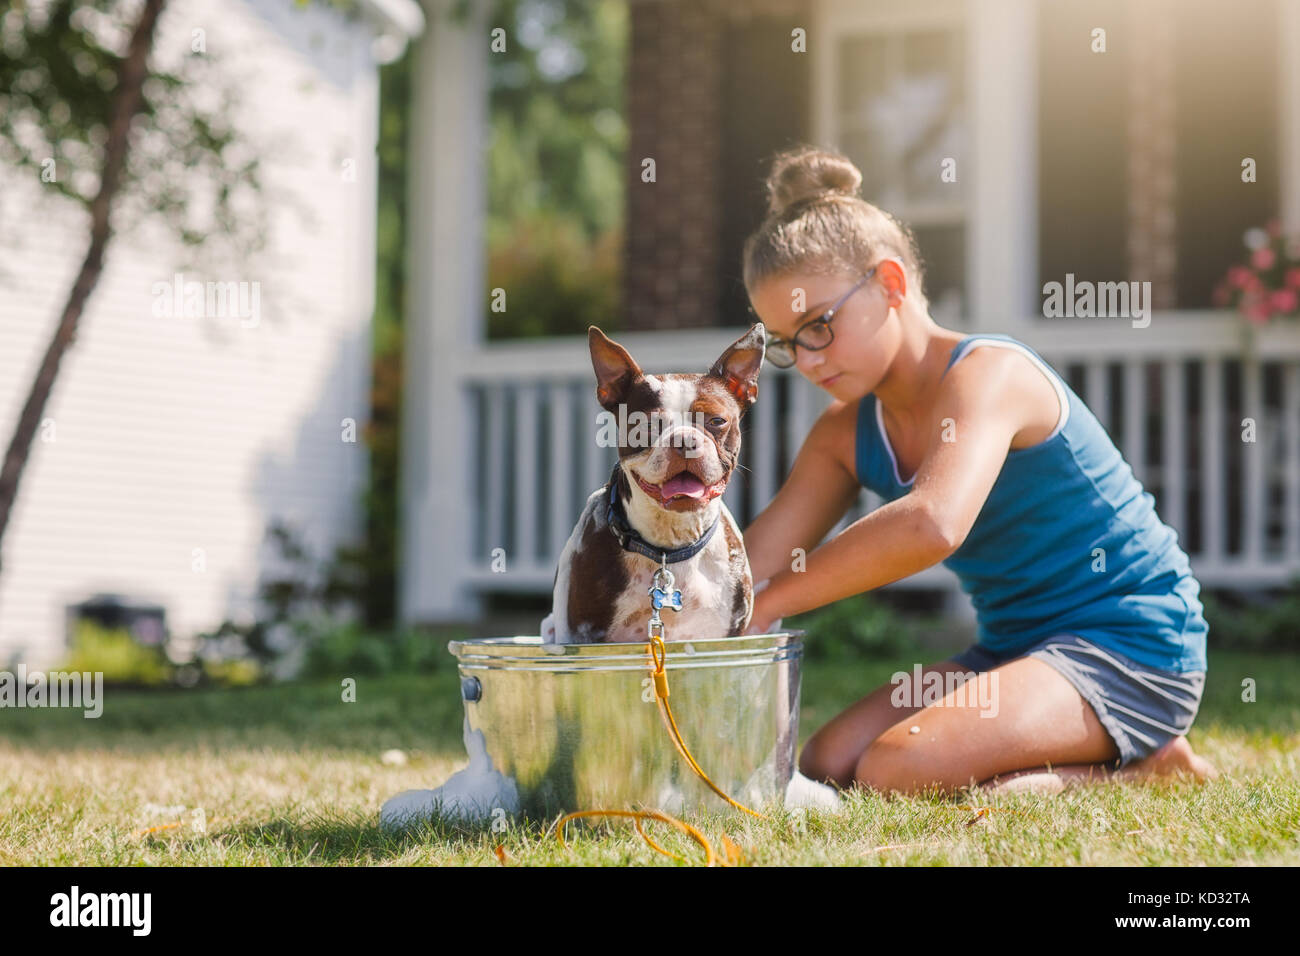 Girl washing dog in bucket - Stock Image